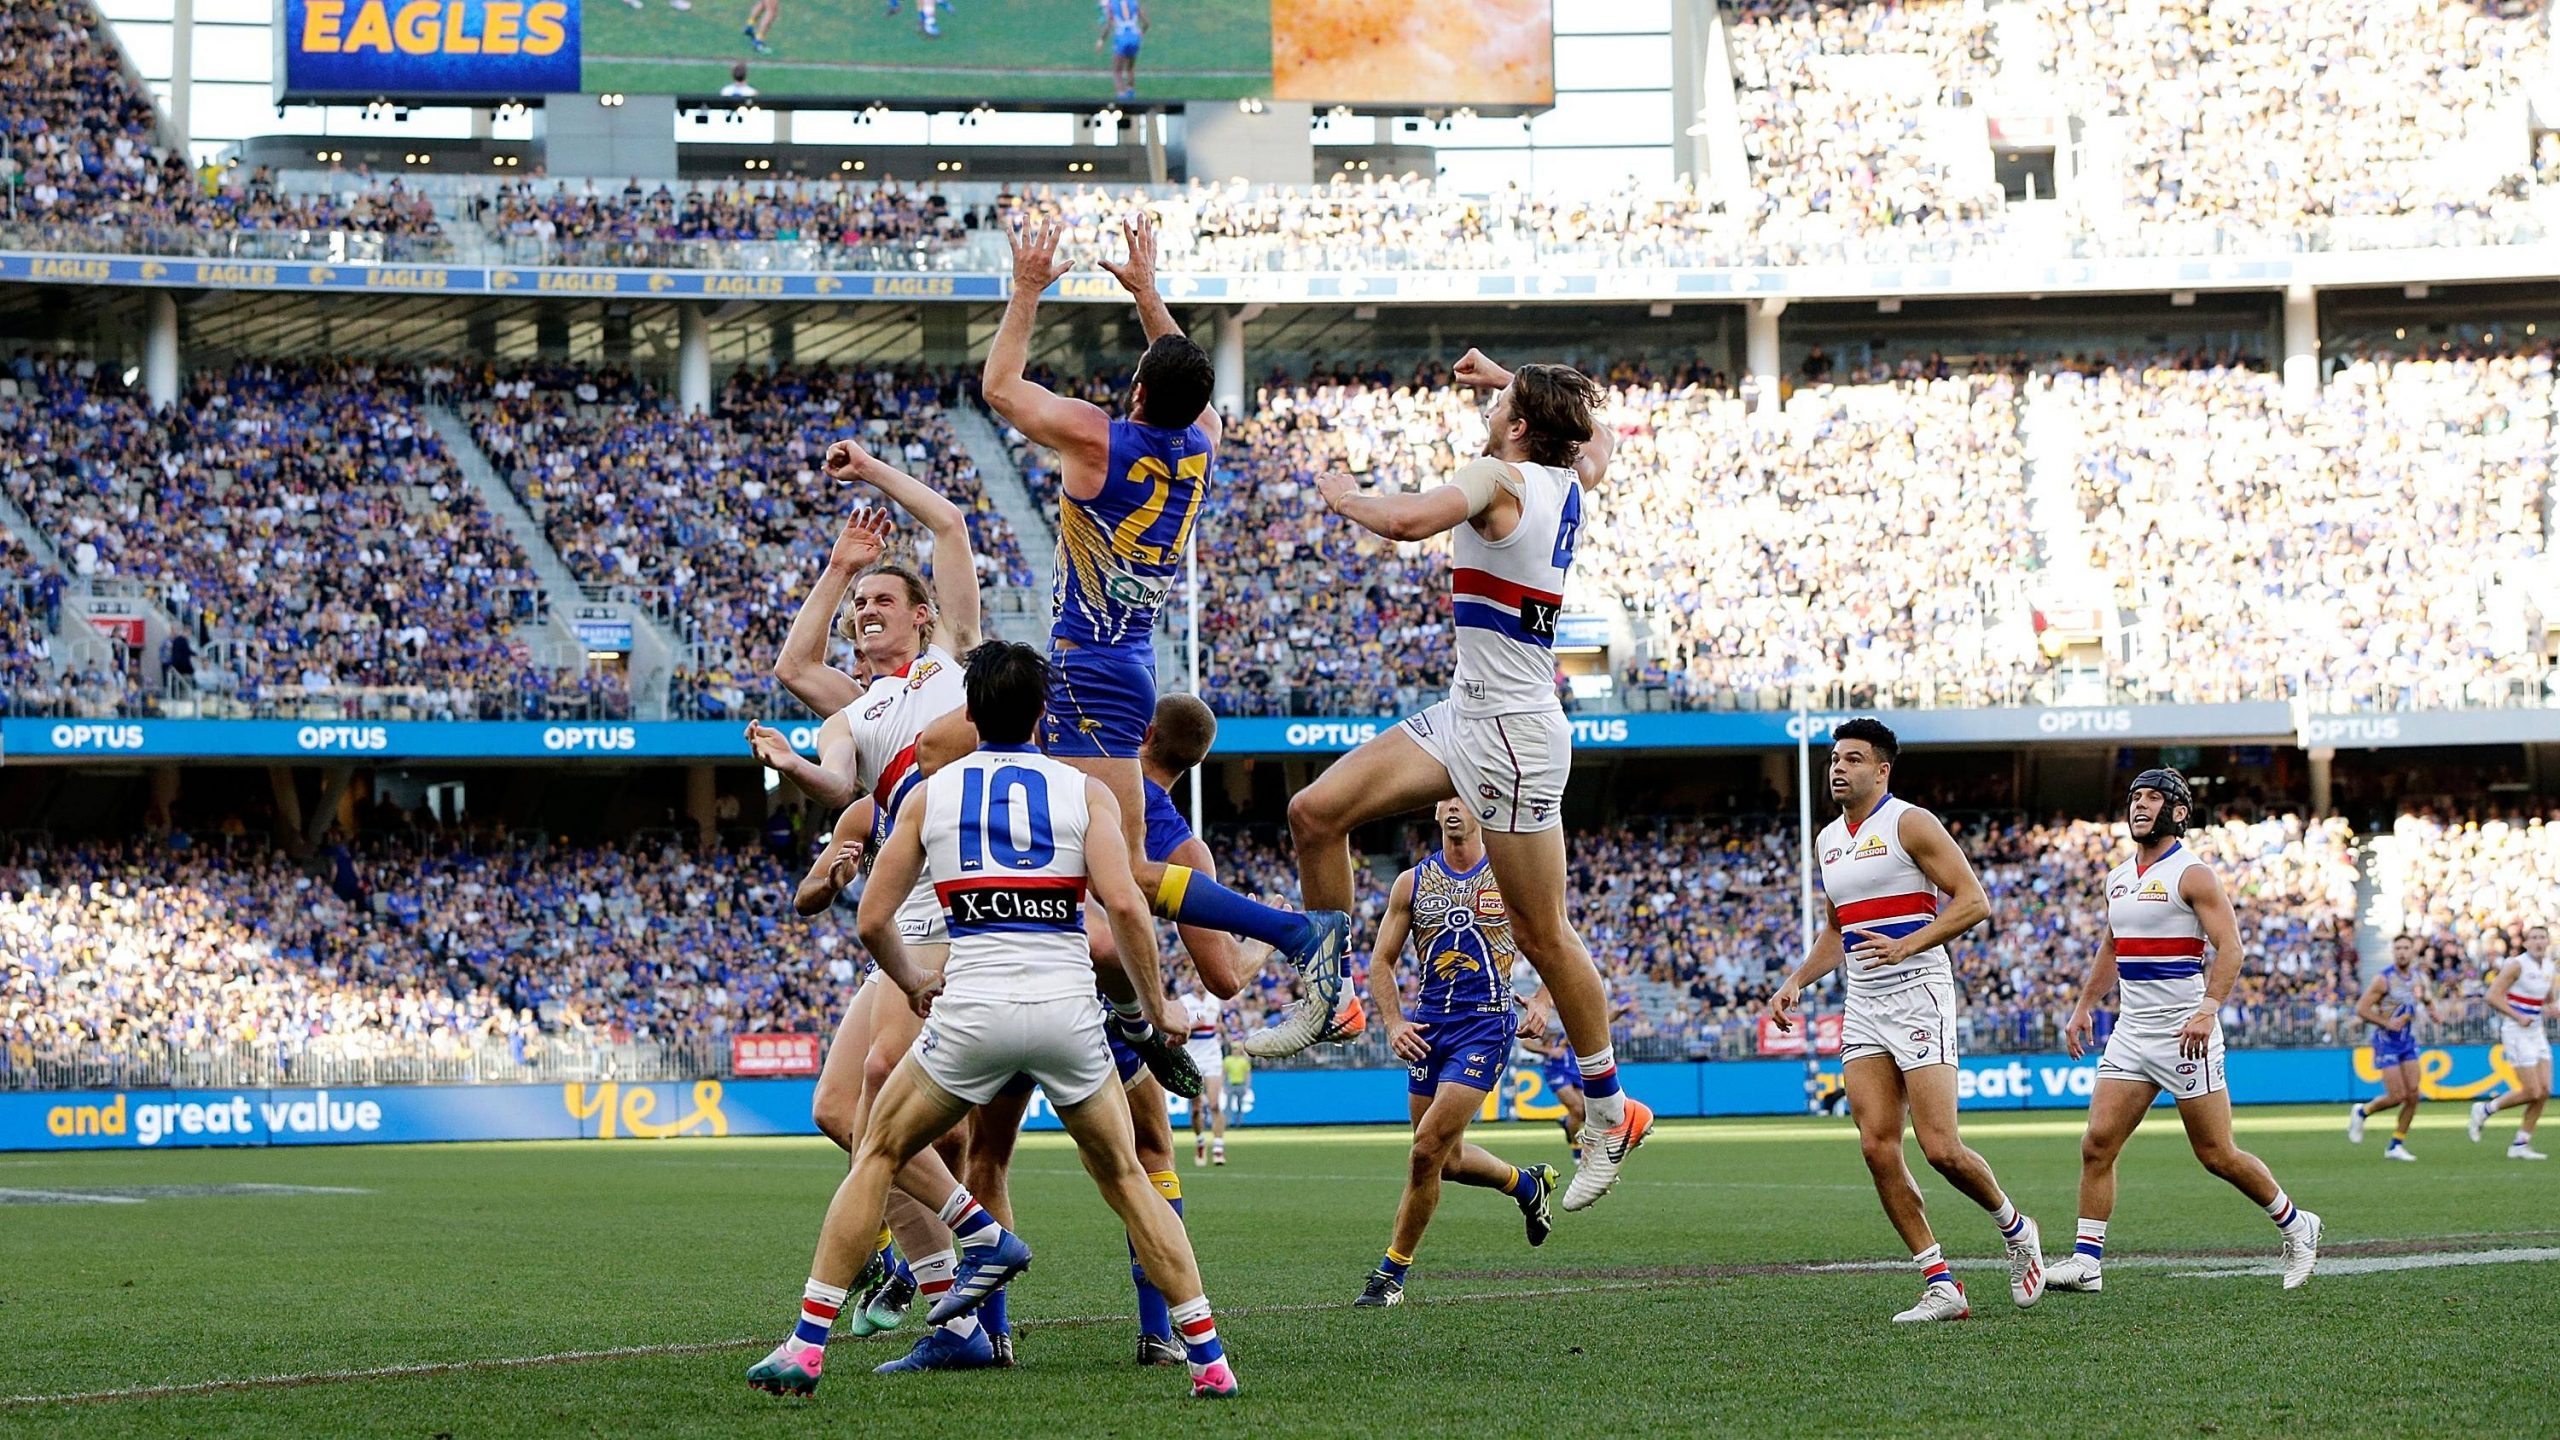 AFL Rd 11 - West Coast v Western Bulldogs